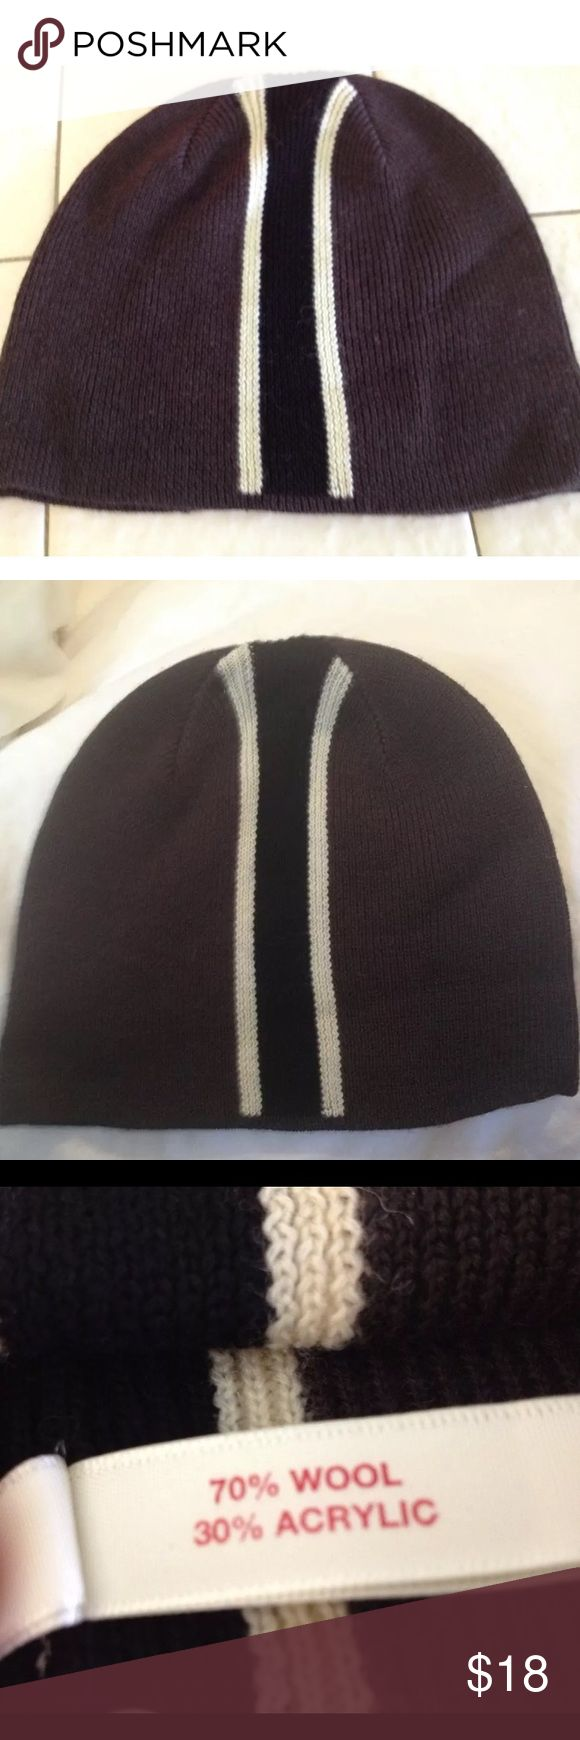 70% WOOL Winter Ski/Snowboarding Hat BRAND NEW UNISEX 1 SIZE FITS MOST BRAND SKI SNOWBOARD BEANIE HAT is the bomb!  WARM & FUNCTIONAL & from a respected, well-known brand! Understated tight knit design in choc brown w/ chic ivory & black stripes. Wool & acrylic blend THIS hat not only KEEPS YOU WARM & TOASTY, it makes this beanie comfortable all day!   Red Envelope is a highly respected boutique brand RECOGNIZED 4 SUPERIOR QUALITY & unique well-made accessories. Warm/Iconic, Gorgeous & Luxe…